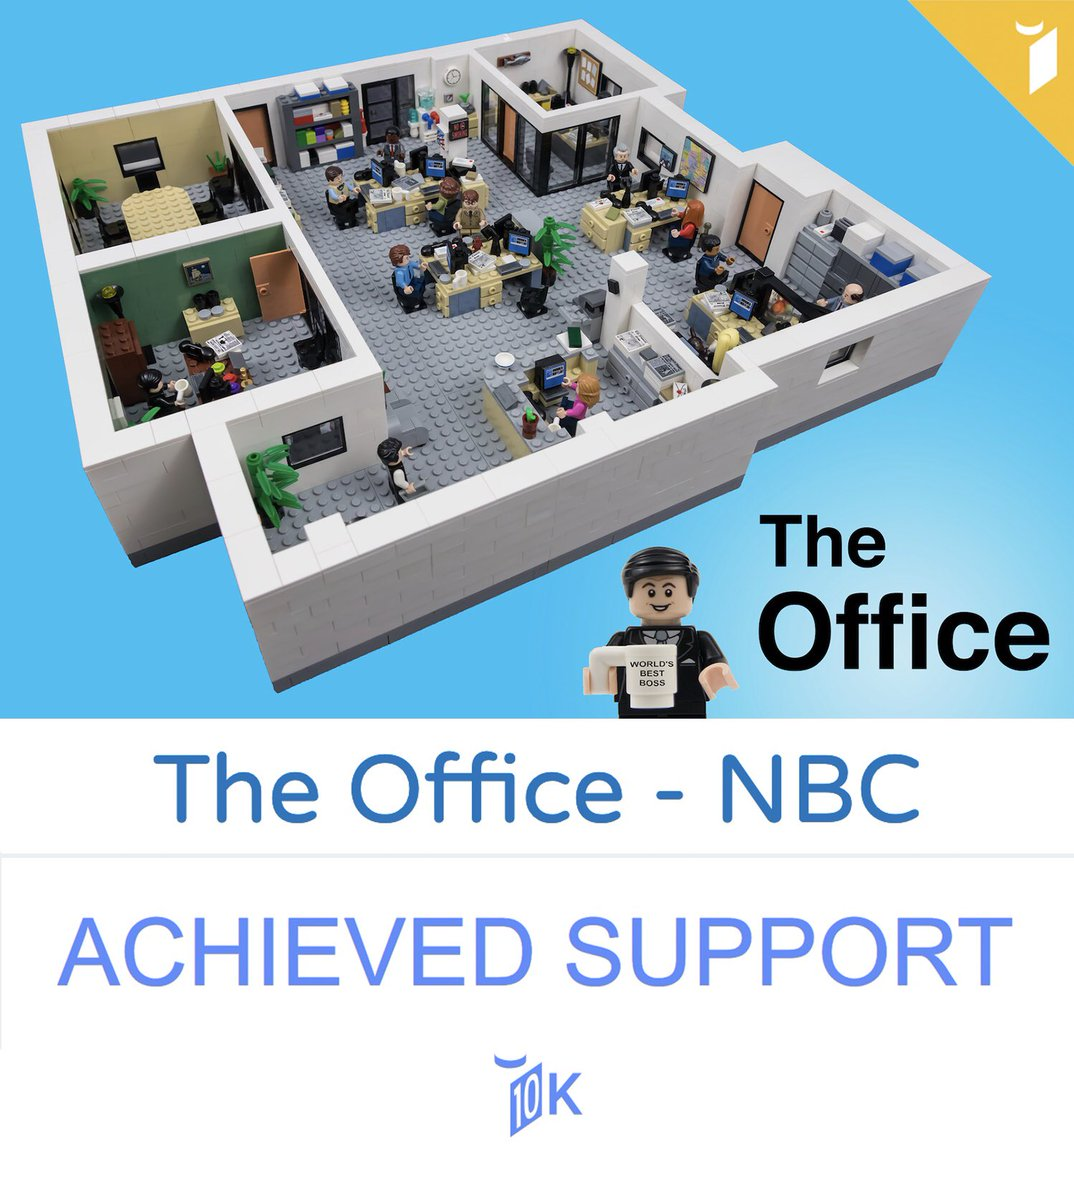 WE DID IT!! 🎉  In case you didn't hear, yesterday, we hit 10,000 supporters on the project!!  LEGO will now review the project and decide whether or not they want to produce it as an official LEGO Set!  Thanks so much to everyone who helped support and share!🙂  #theoffice #lego